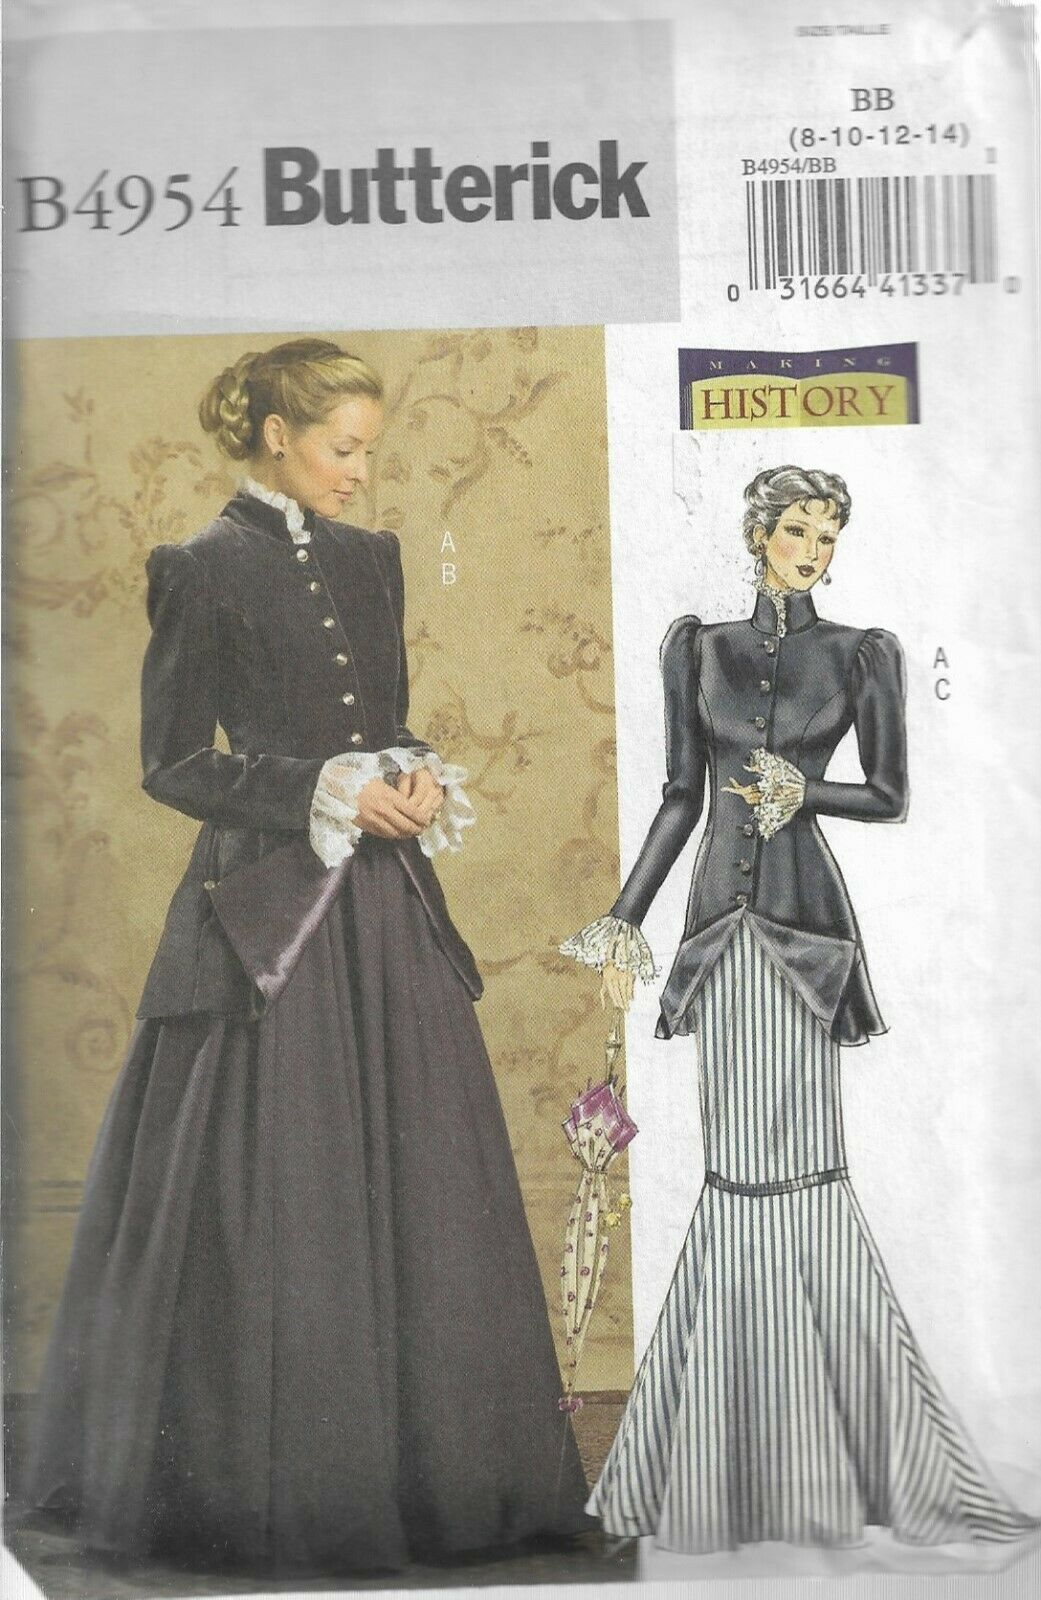 Butterick History Costume Pattern B4954-Misses Early 20th Century Costume 8-14 - $7.95